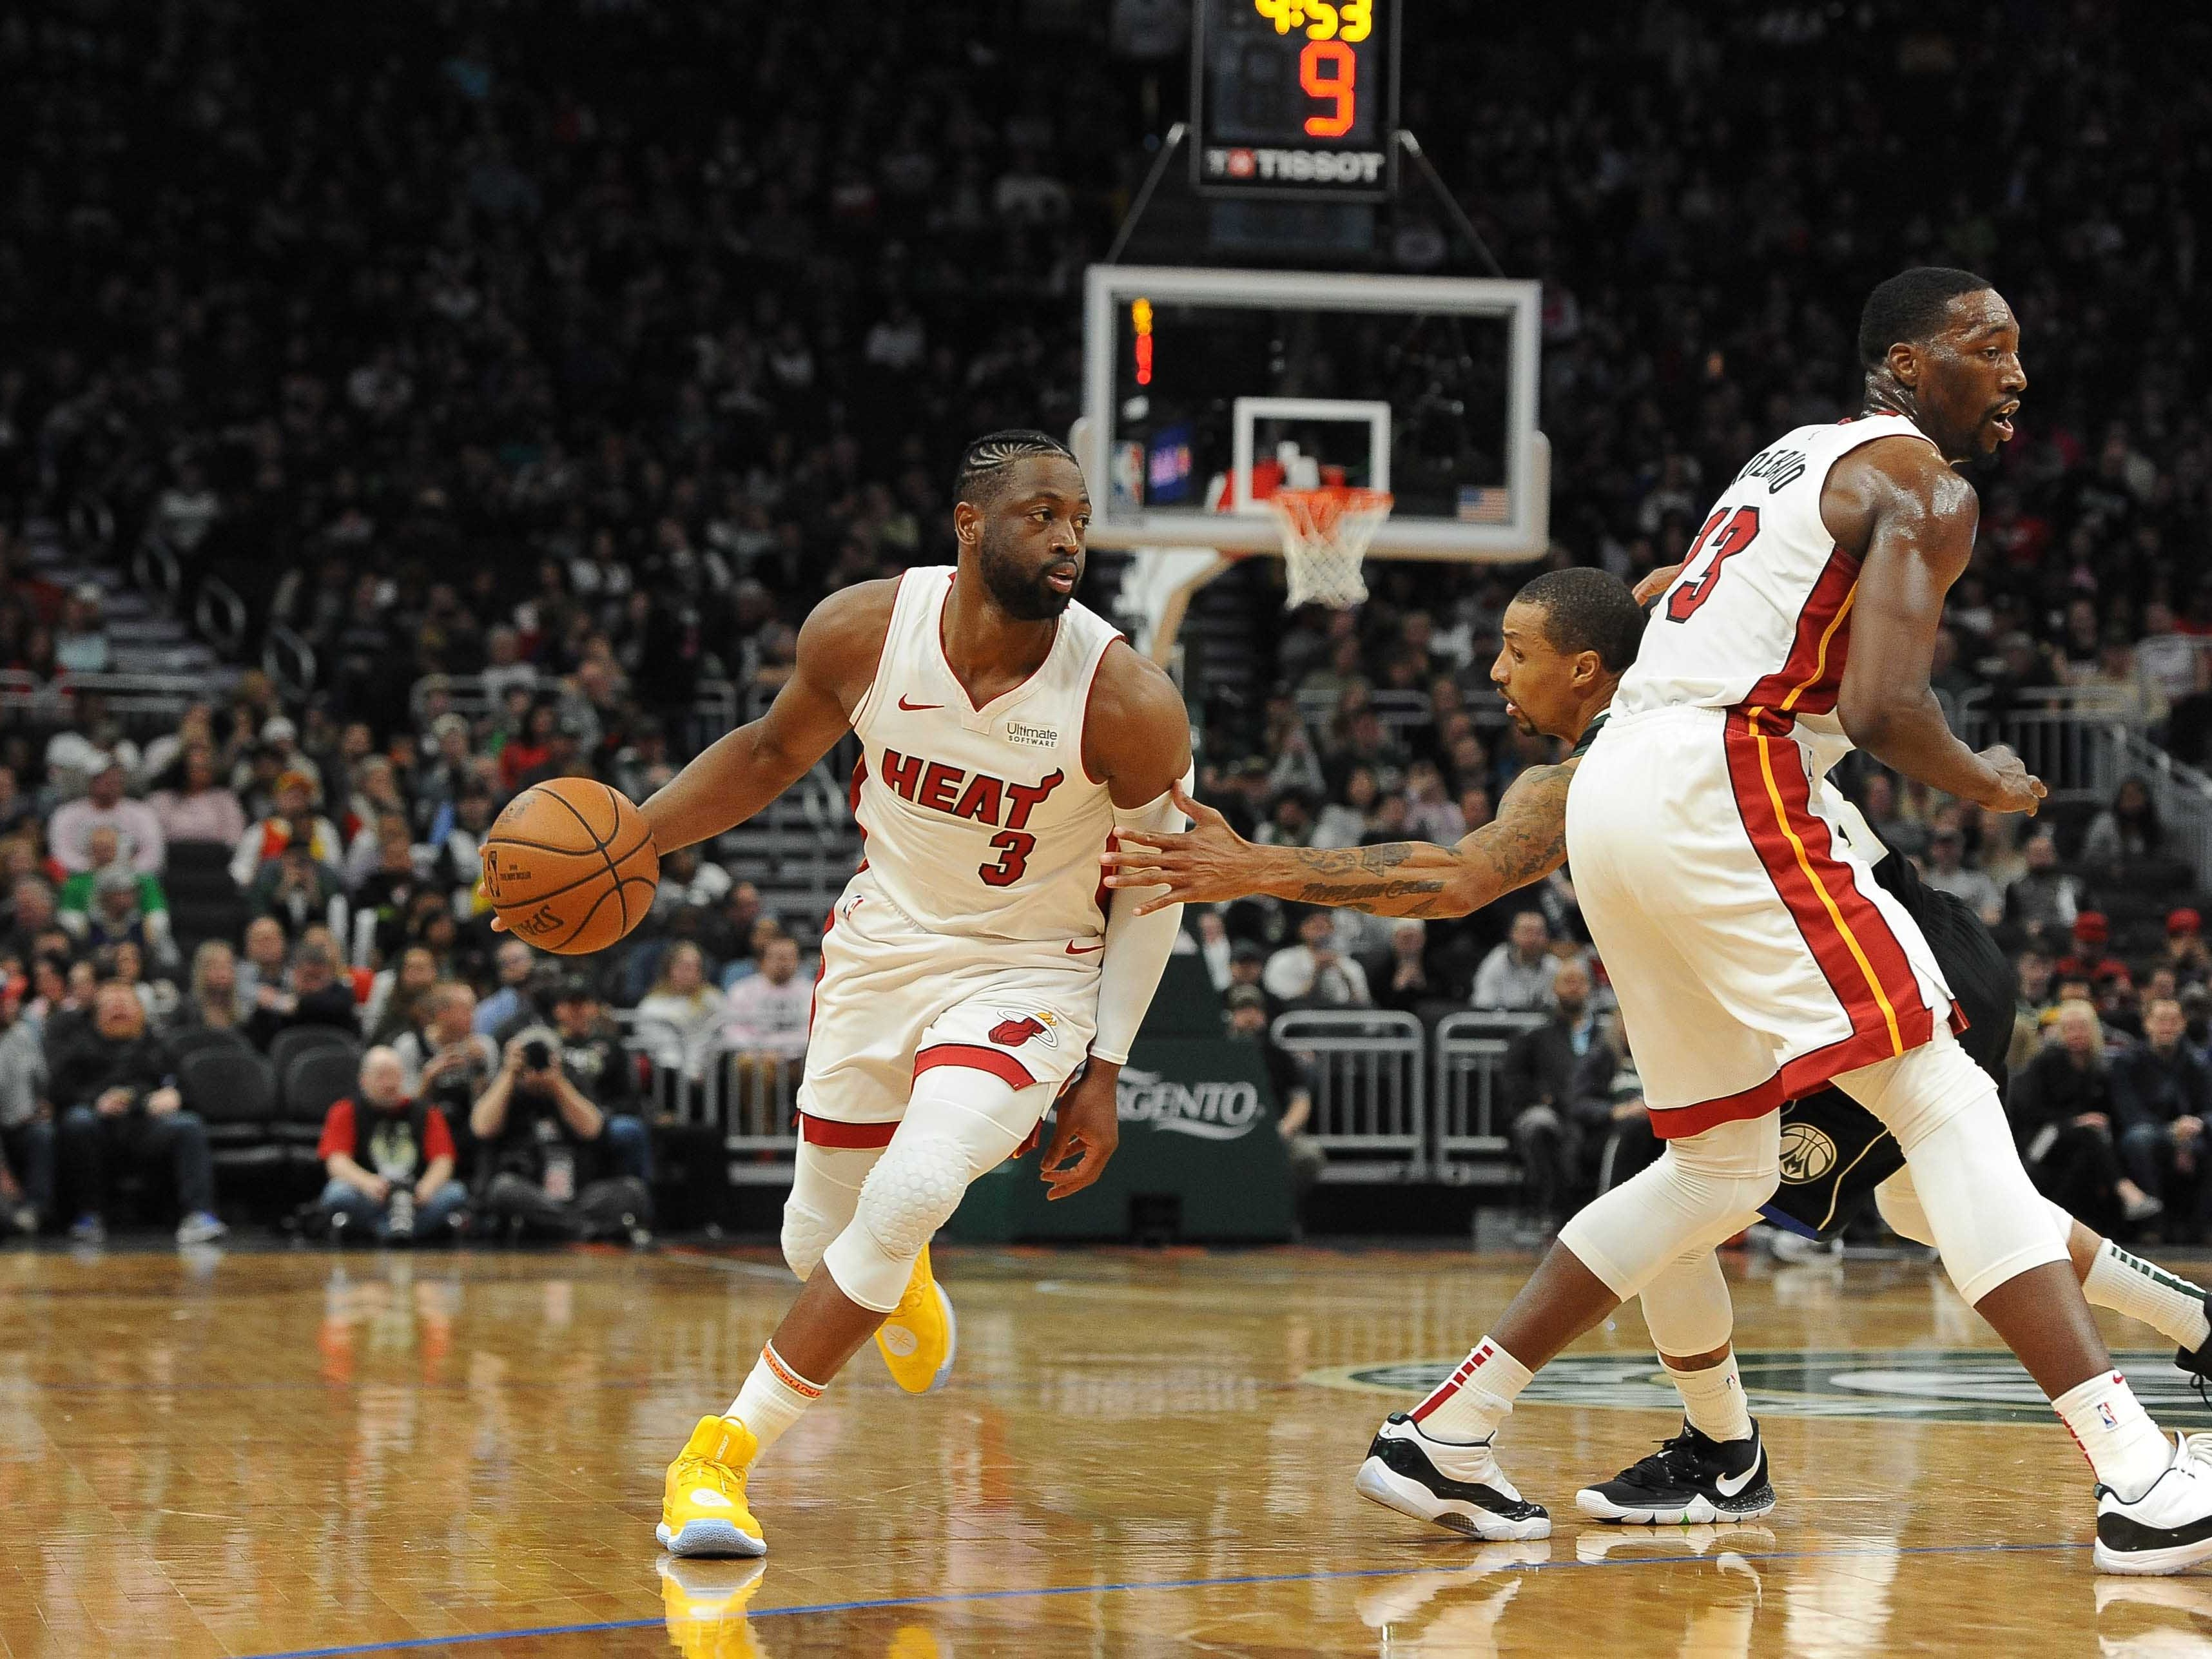 Heat guard Dwayne Wade drives around a pick during the third quarter against the Bucks. Wade, the former Marquette star, played his final regular season game in Milwaukee on Friday night.